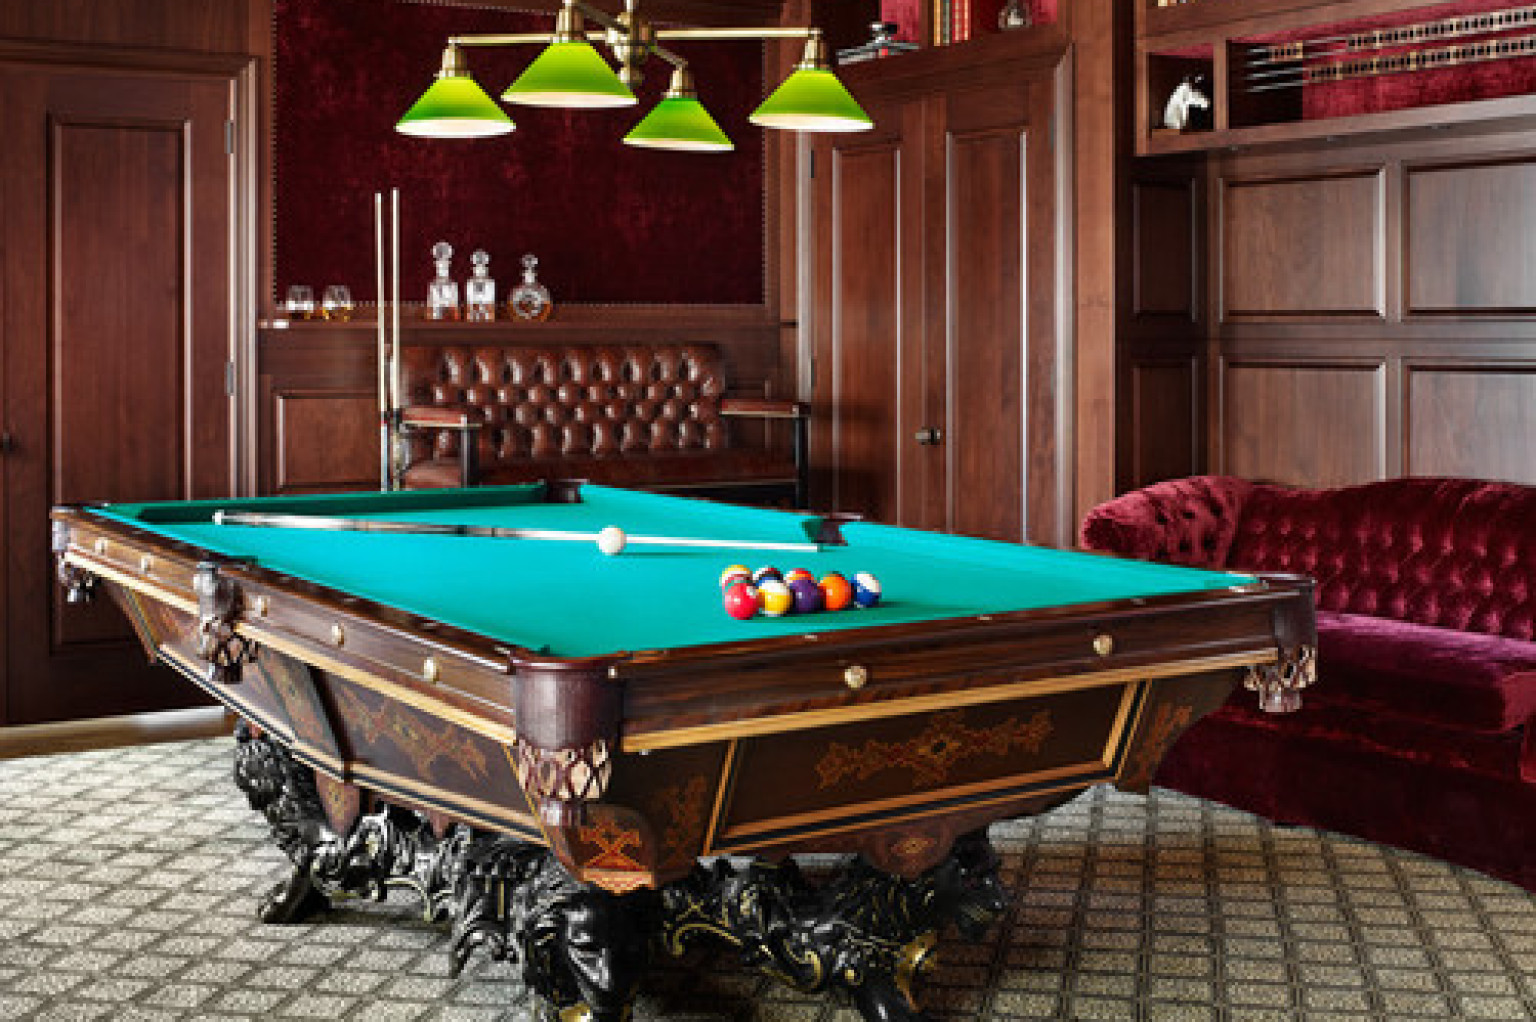 Homes With Amazing Pool Tables That Are Anything But An Eyesore